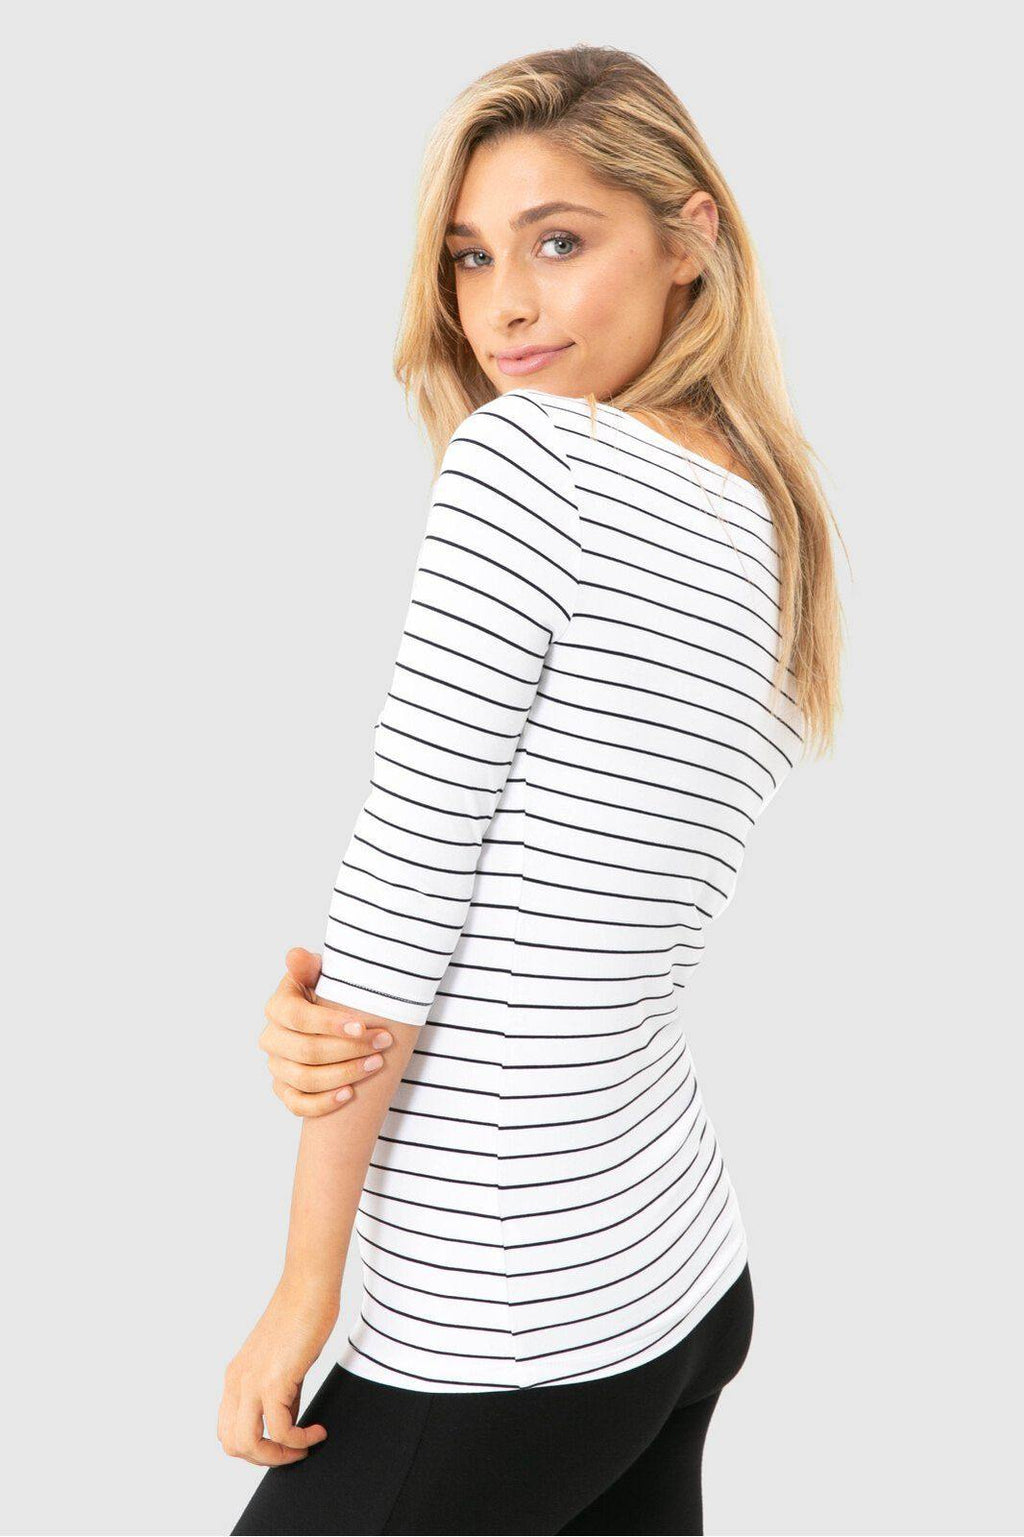 Bamboo Body Ada Bamboo Boat Neck Top - White & Black Stripe | Buy Online at Weekends